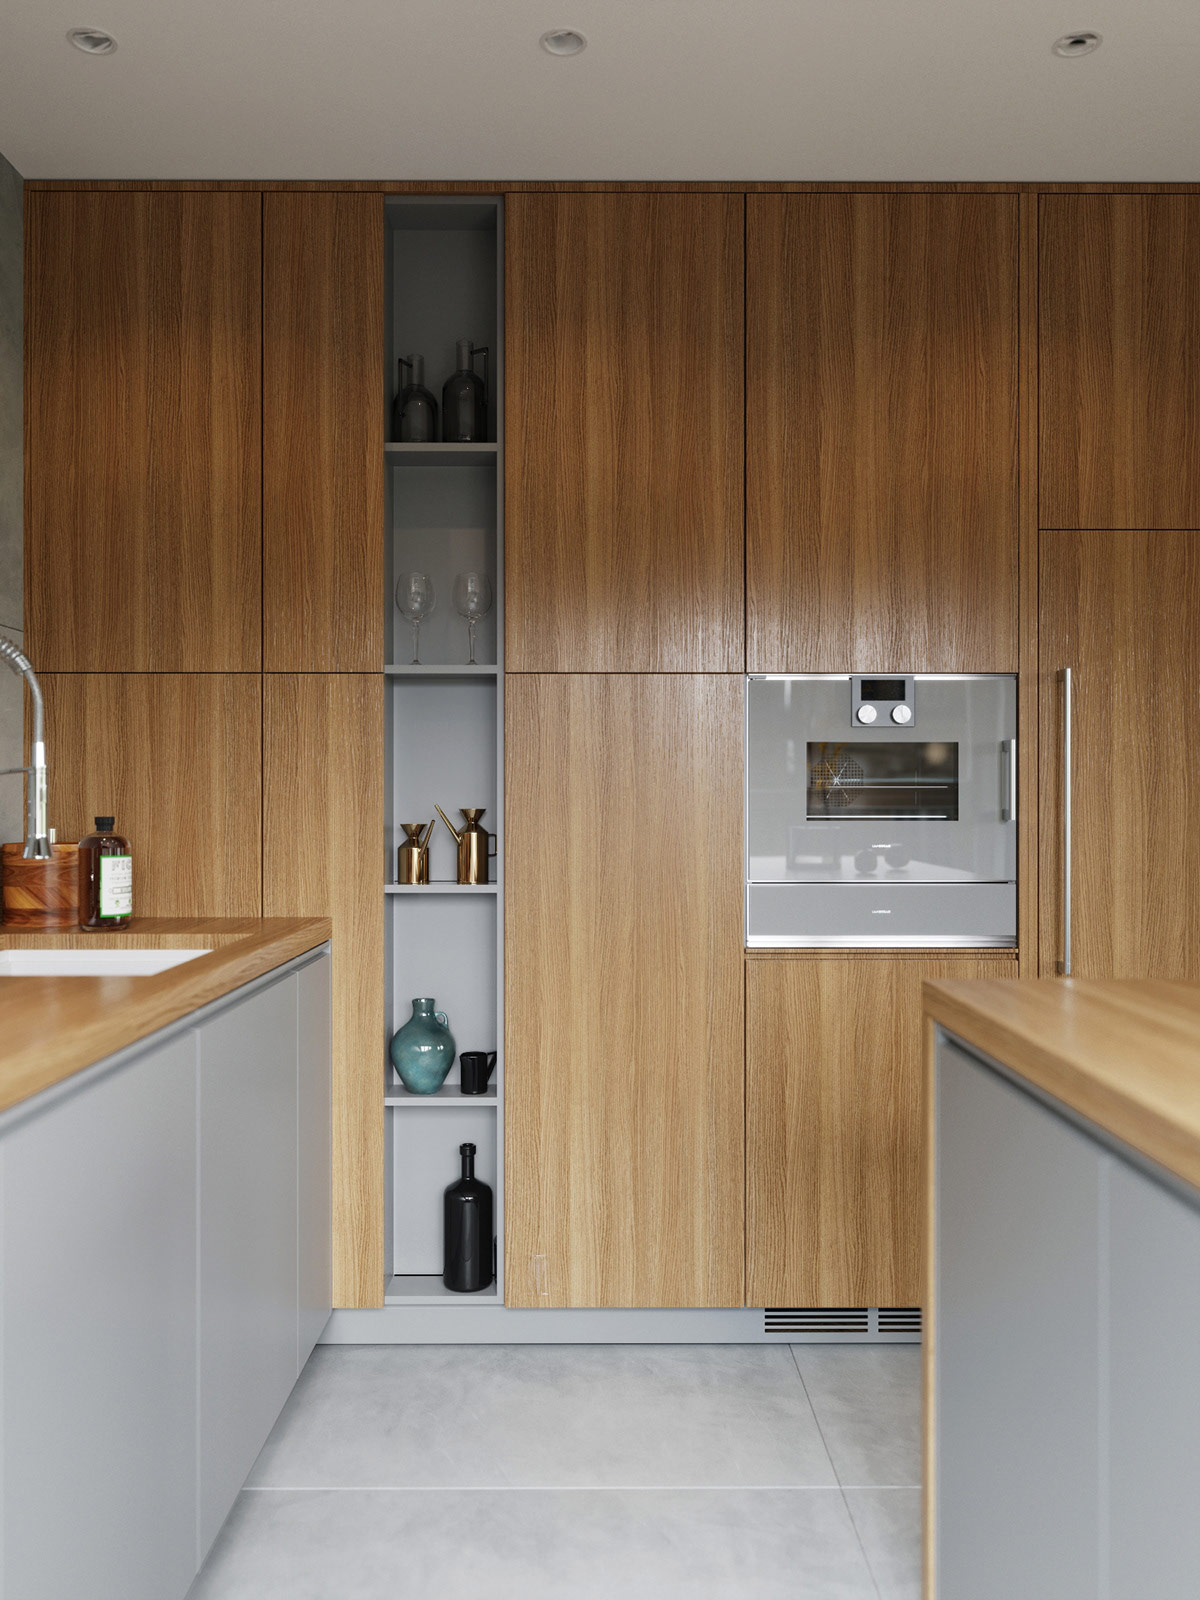 modern-kitchen-with-wood-cabinetry-and-open-shelving-inspiration